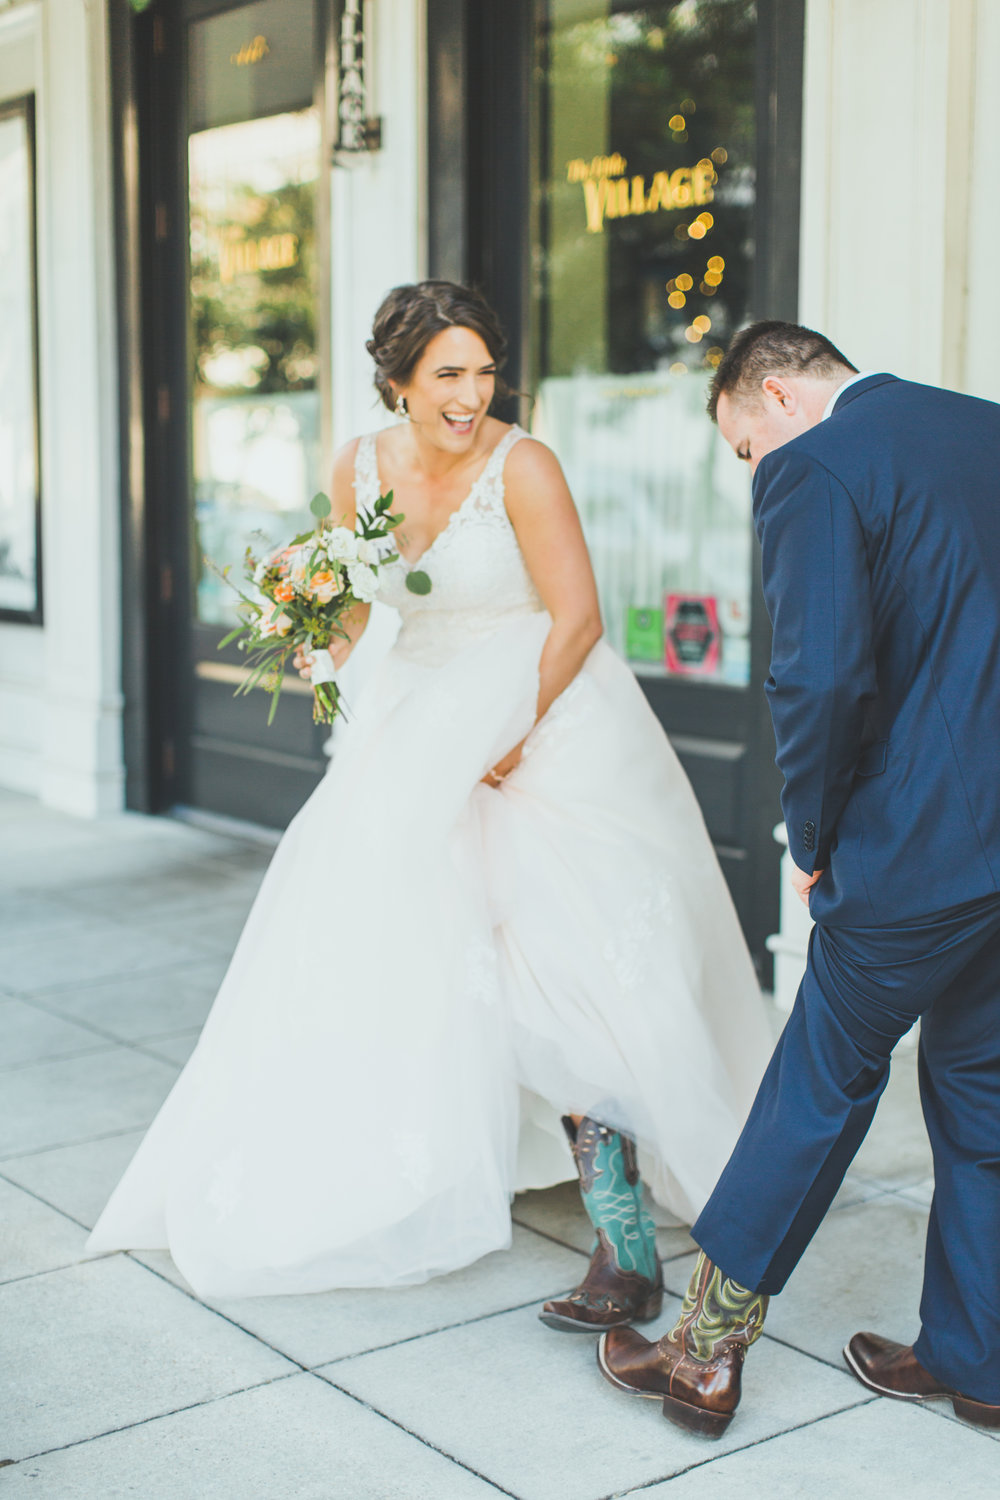 Rustic Attire - This couple chose to incorporate their love for western style boots into their wedding. During their first look they showed each other their boots and the joy on the brides face is evident.